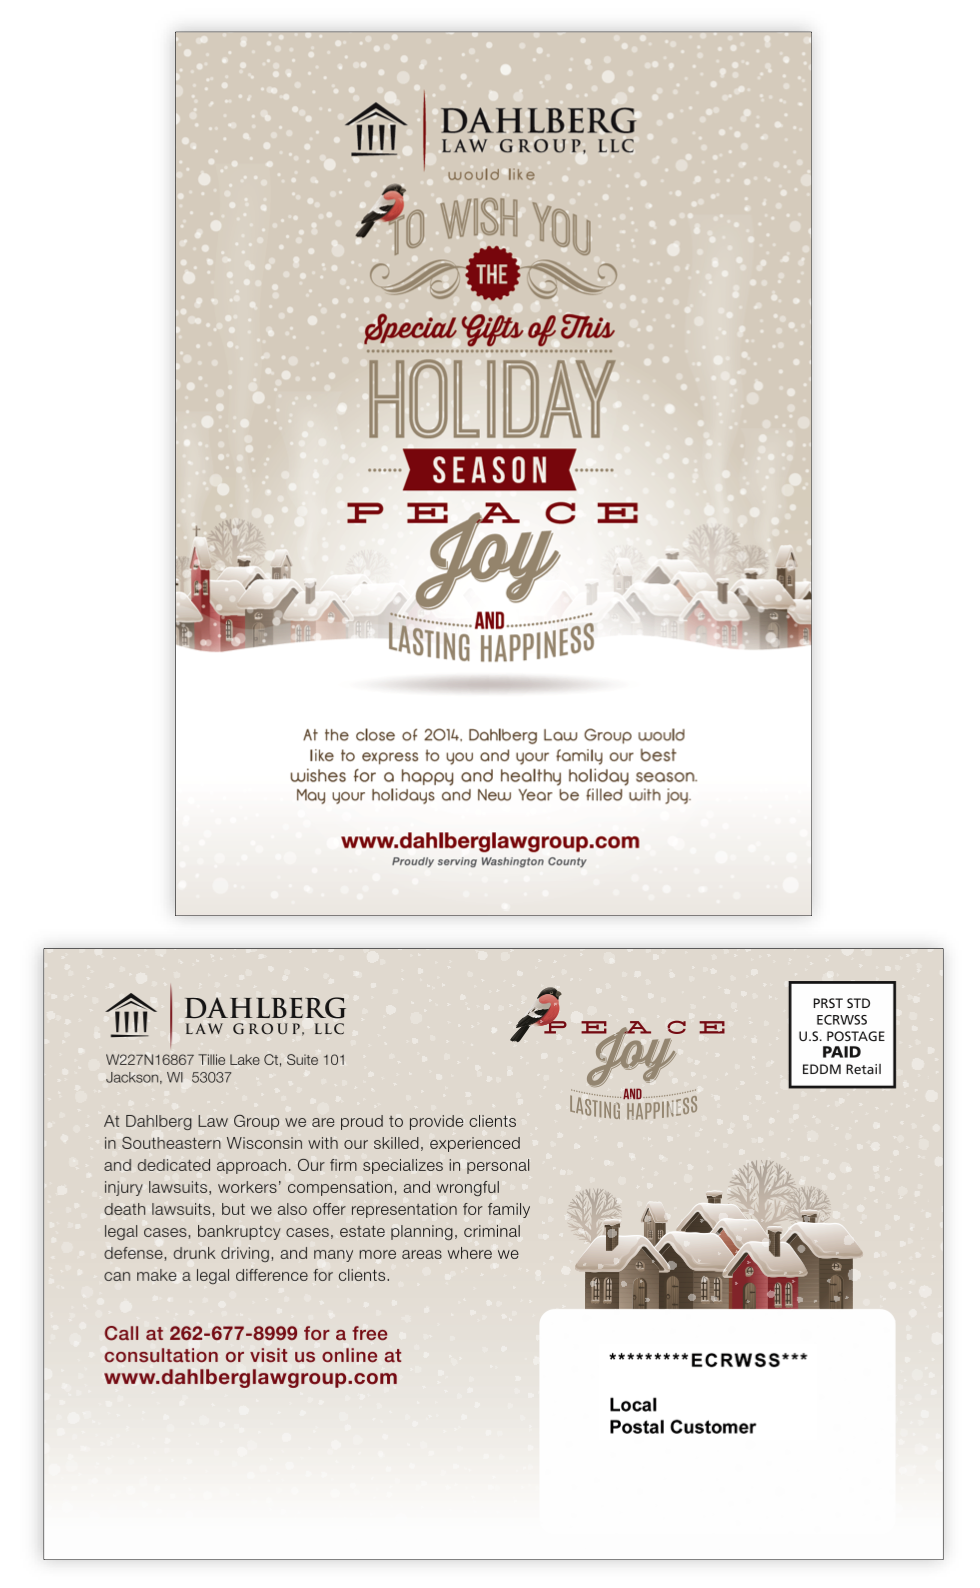 Dahlberg Law Group holiday mailer